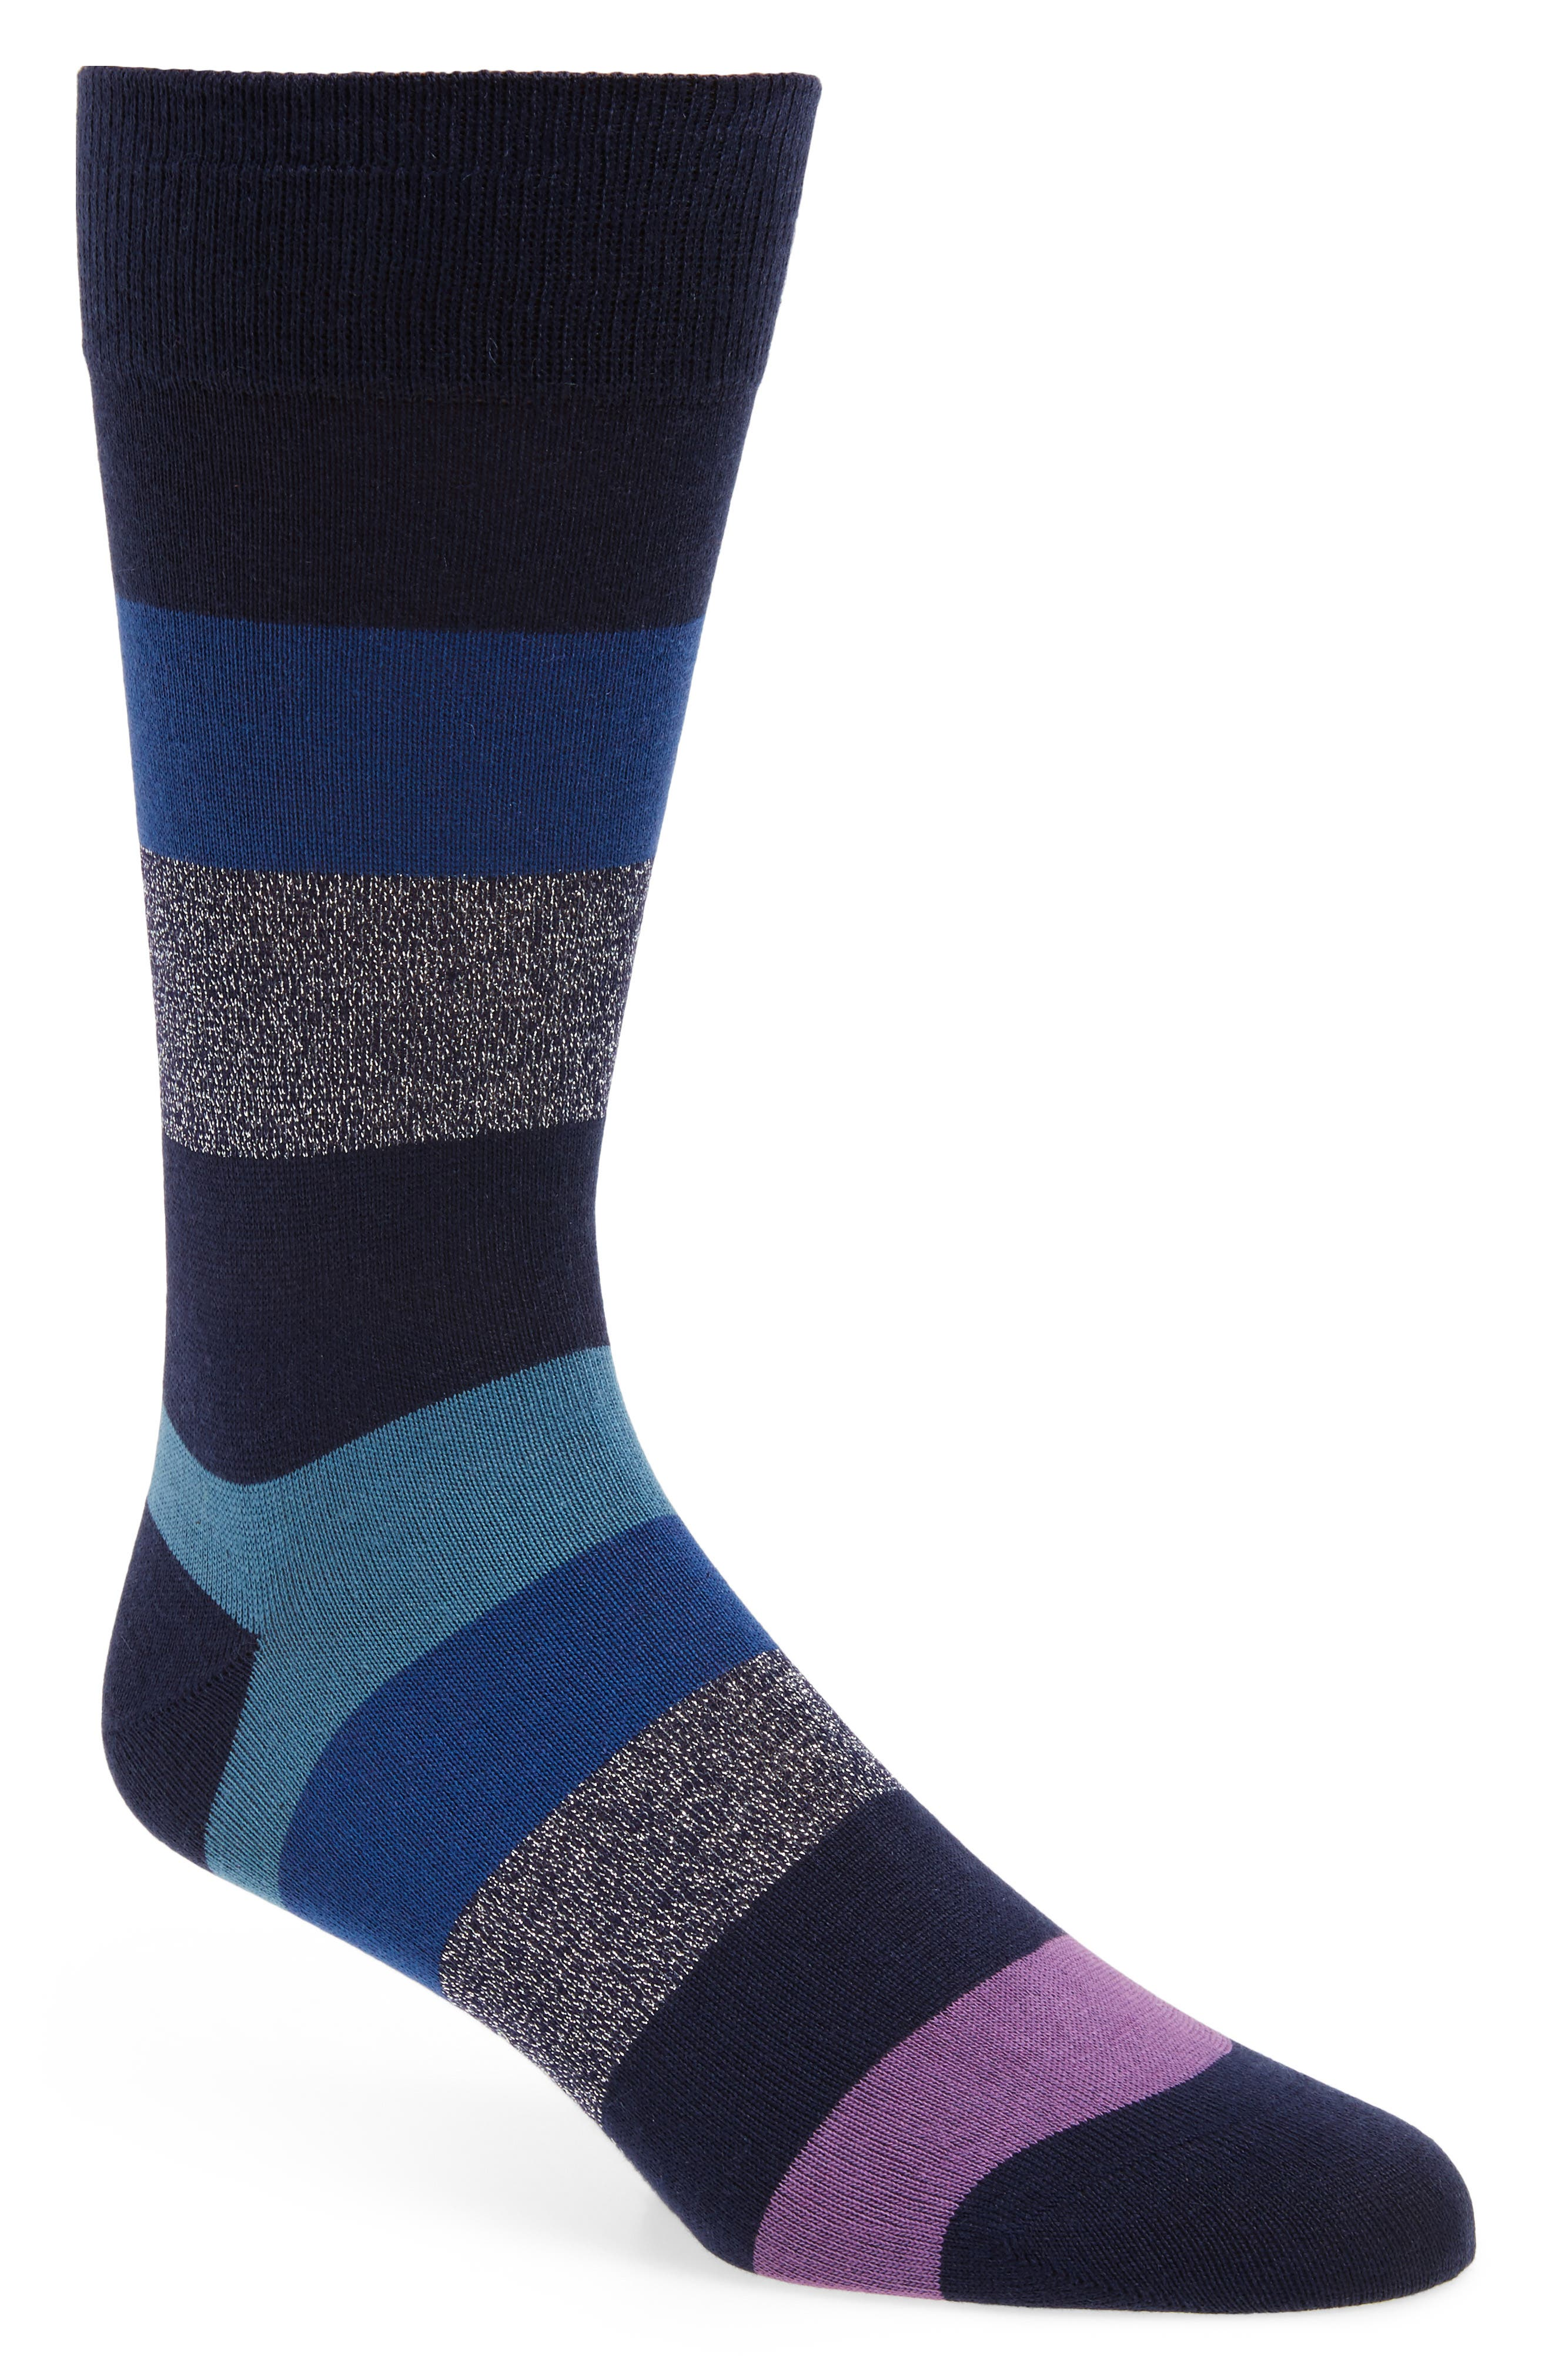 Starlight Socks,                             Main thumbnail 1, color,                             Black